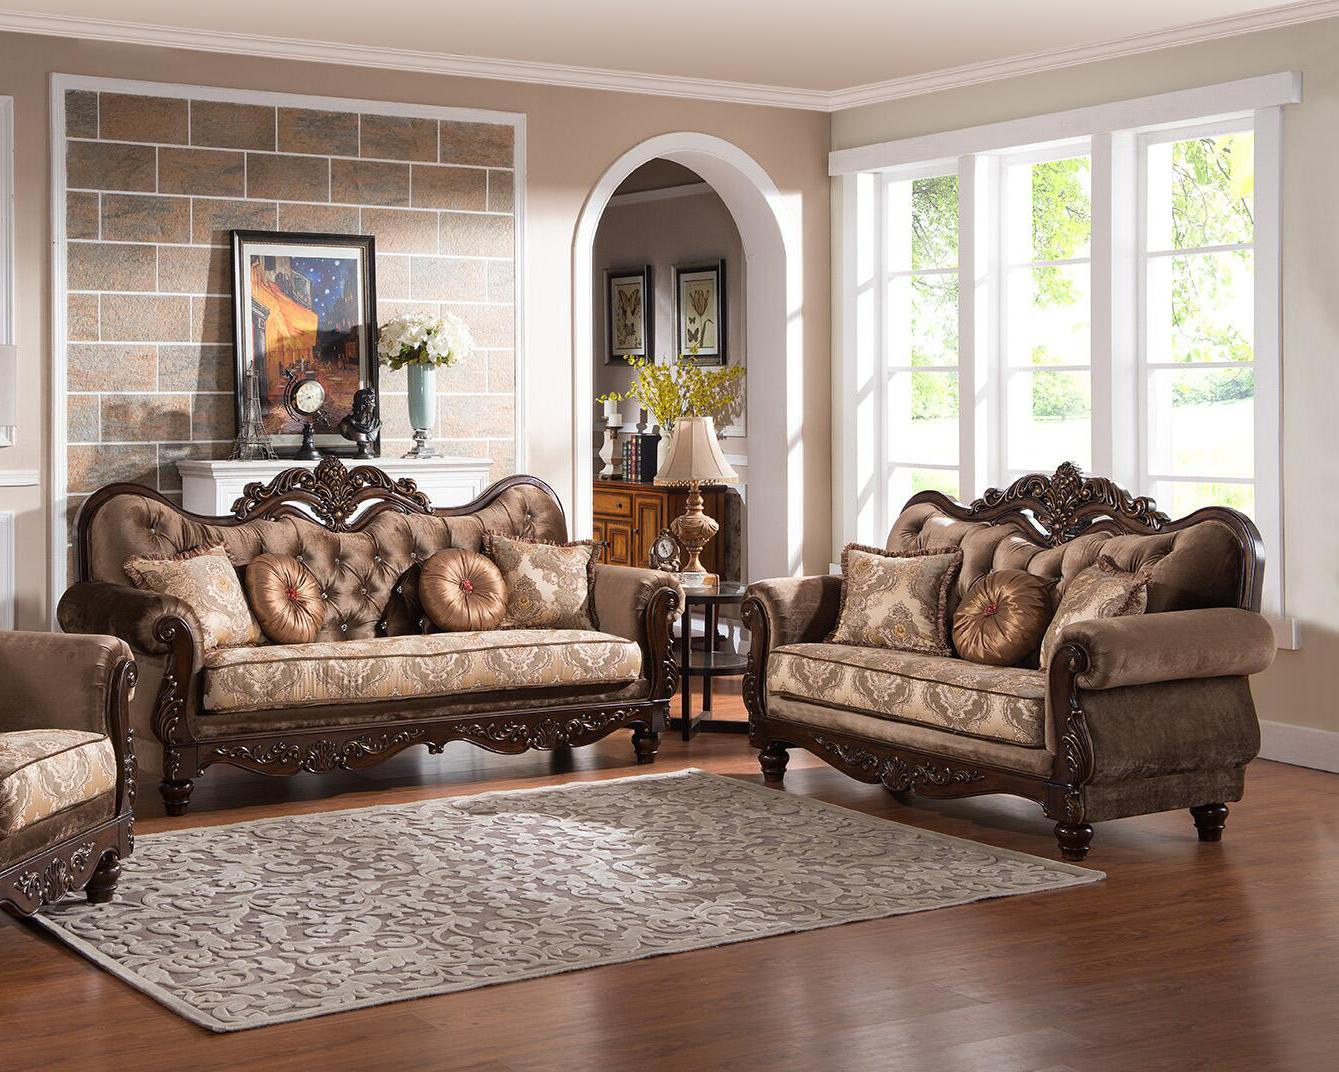 Traditional Cherry Fabric Sofa and Loveseat Set 2 pcs Cosmos Furniture Zoya-Set-2